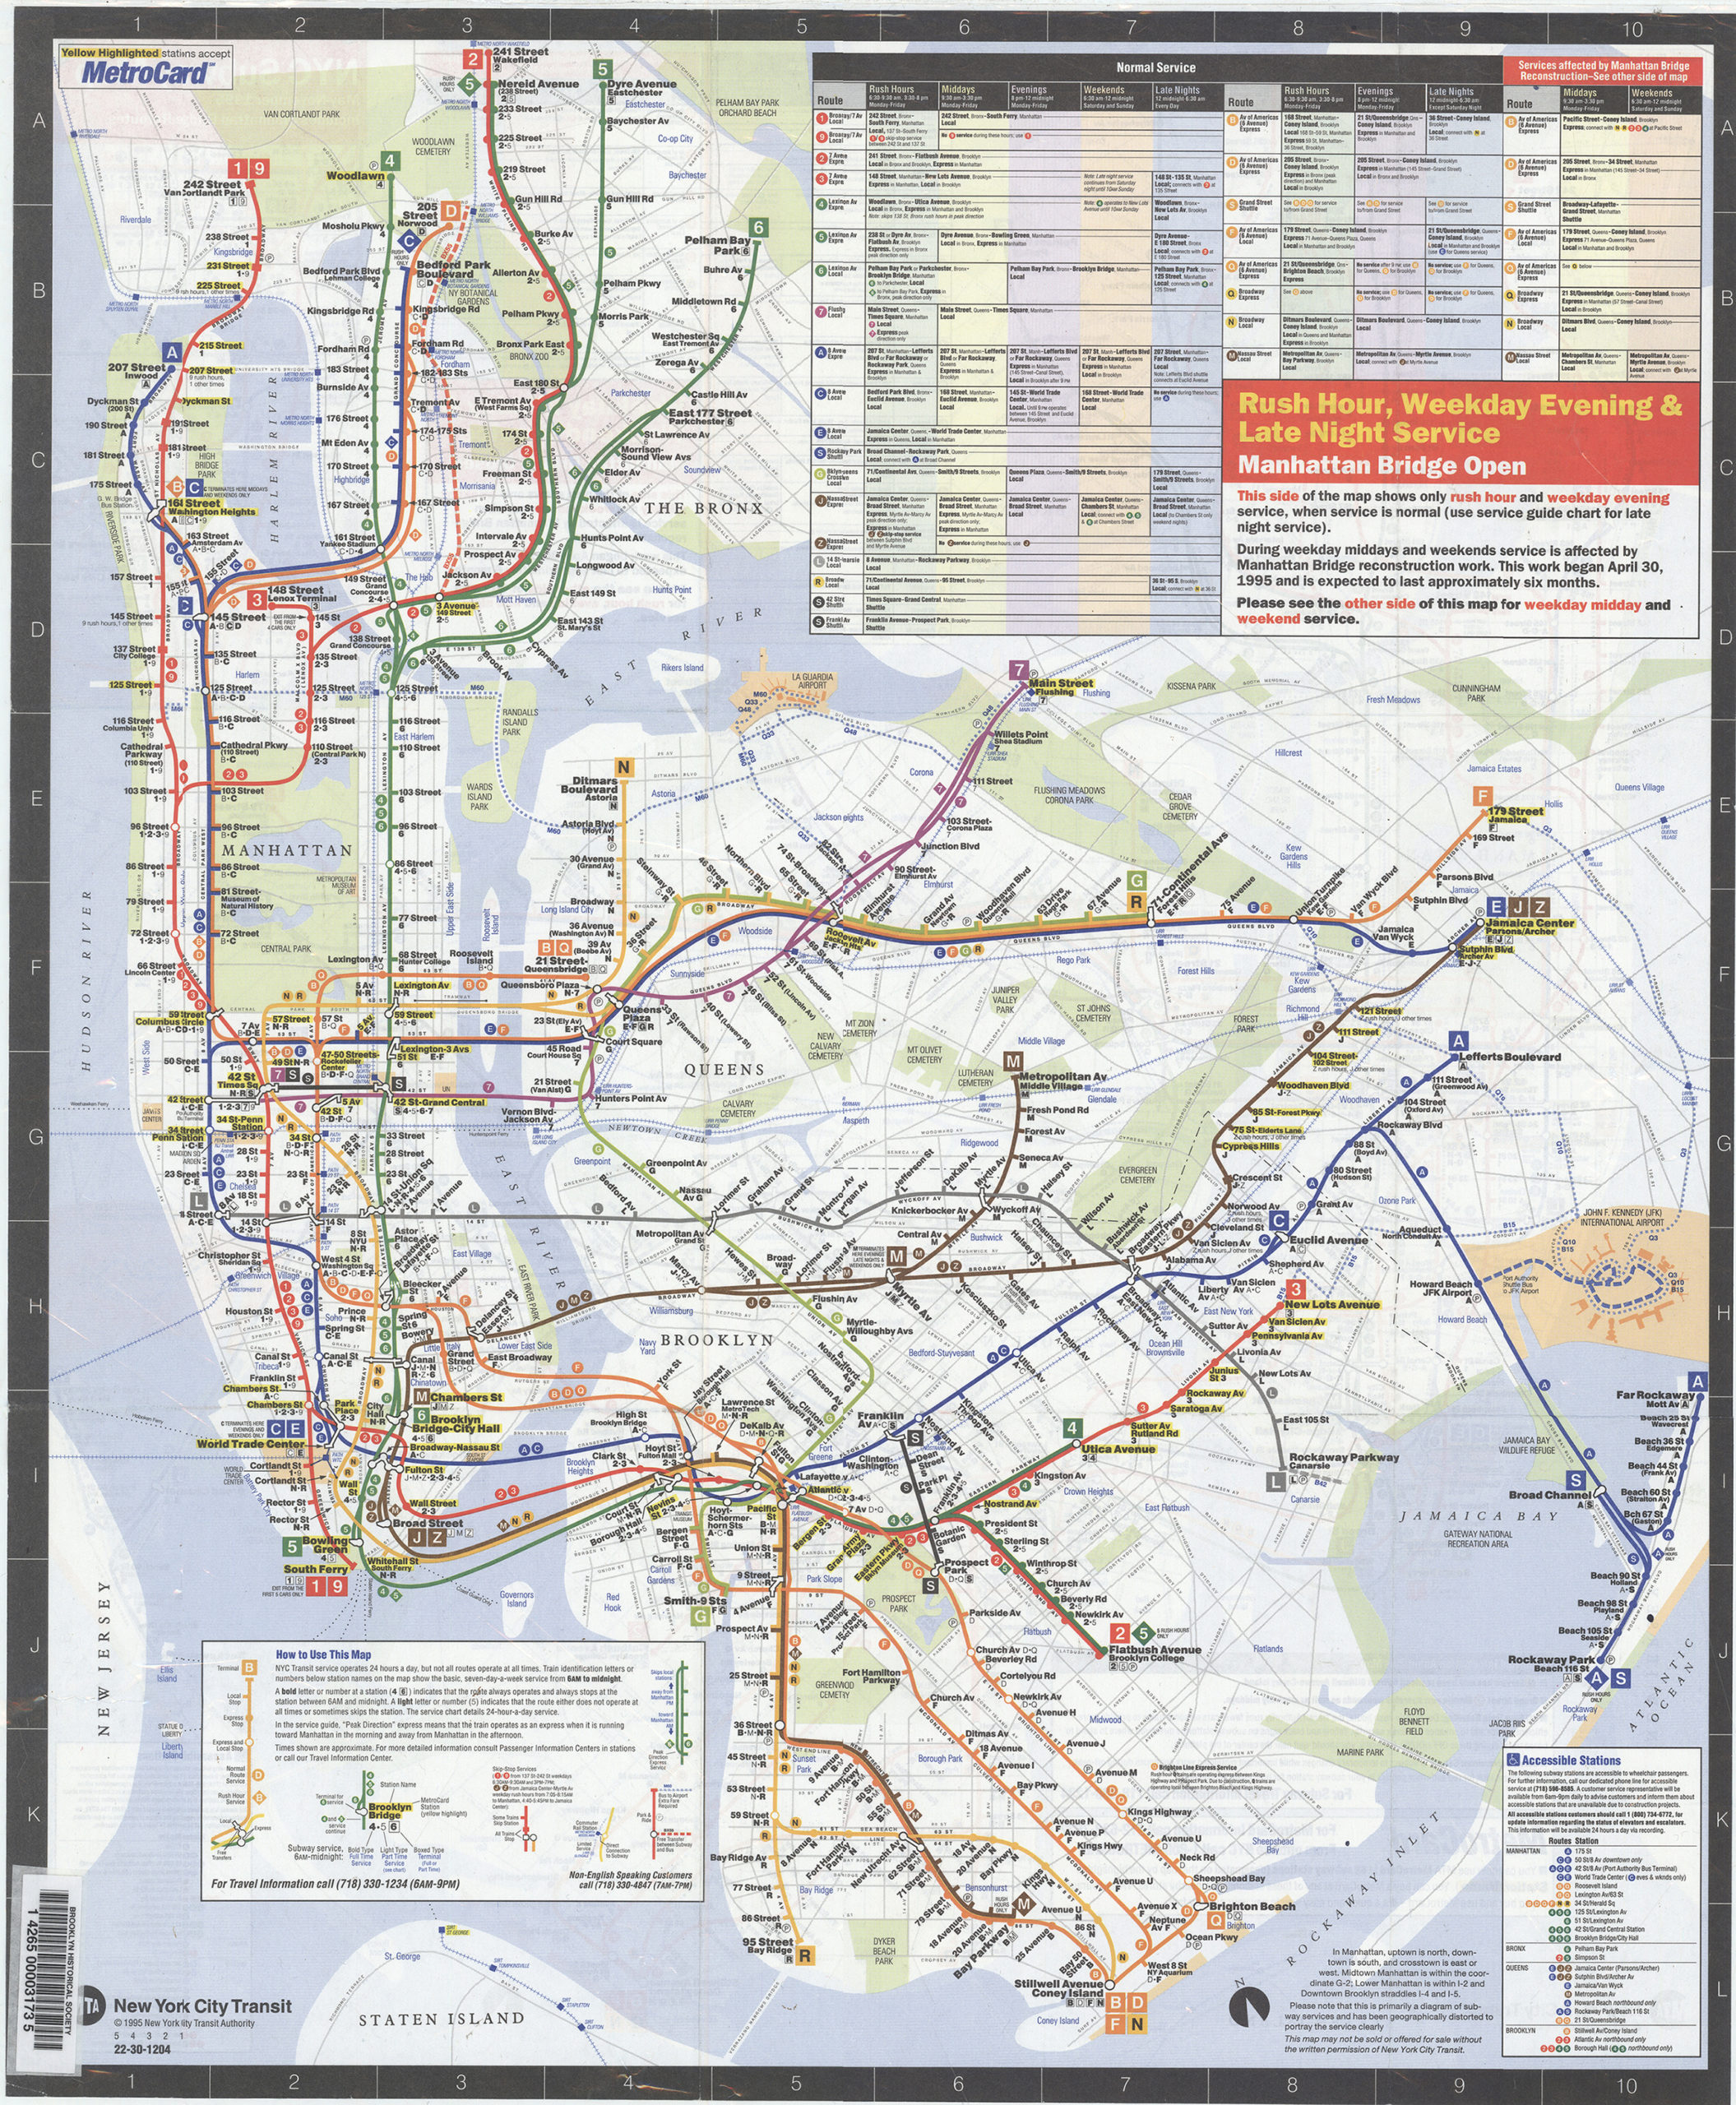 Subway Map Manhattan Ny.Nyc Subway Map May November 1995 Includes Manhattan Bridge Reroutes Mta New York City Transit Authority Map Collections Map Collections